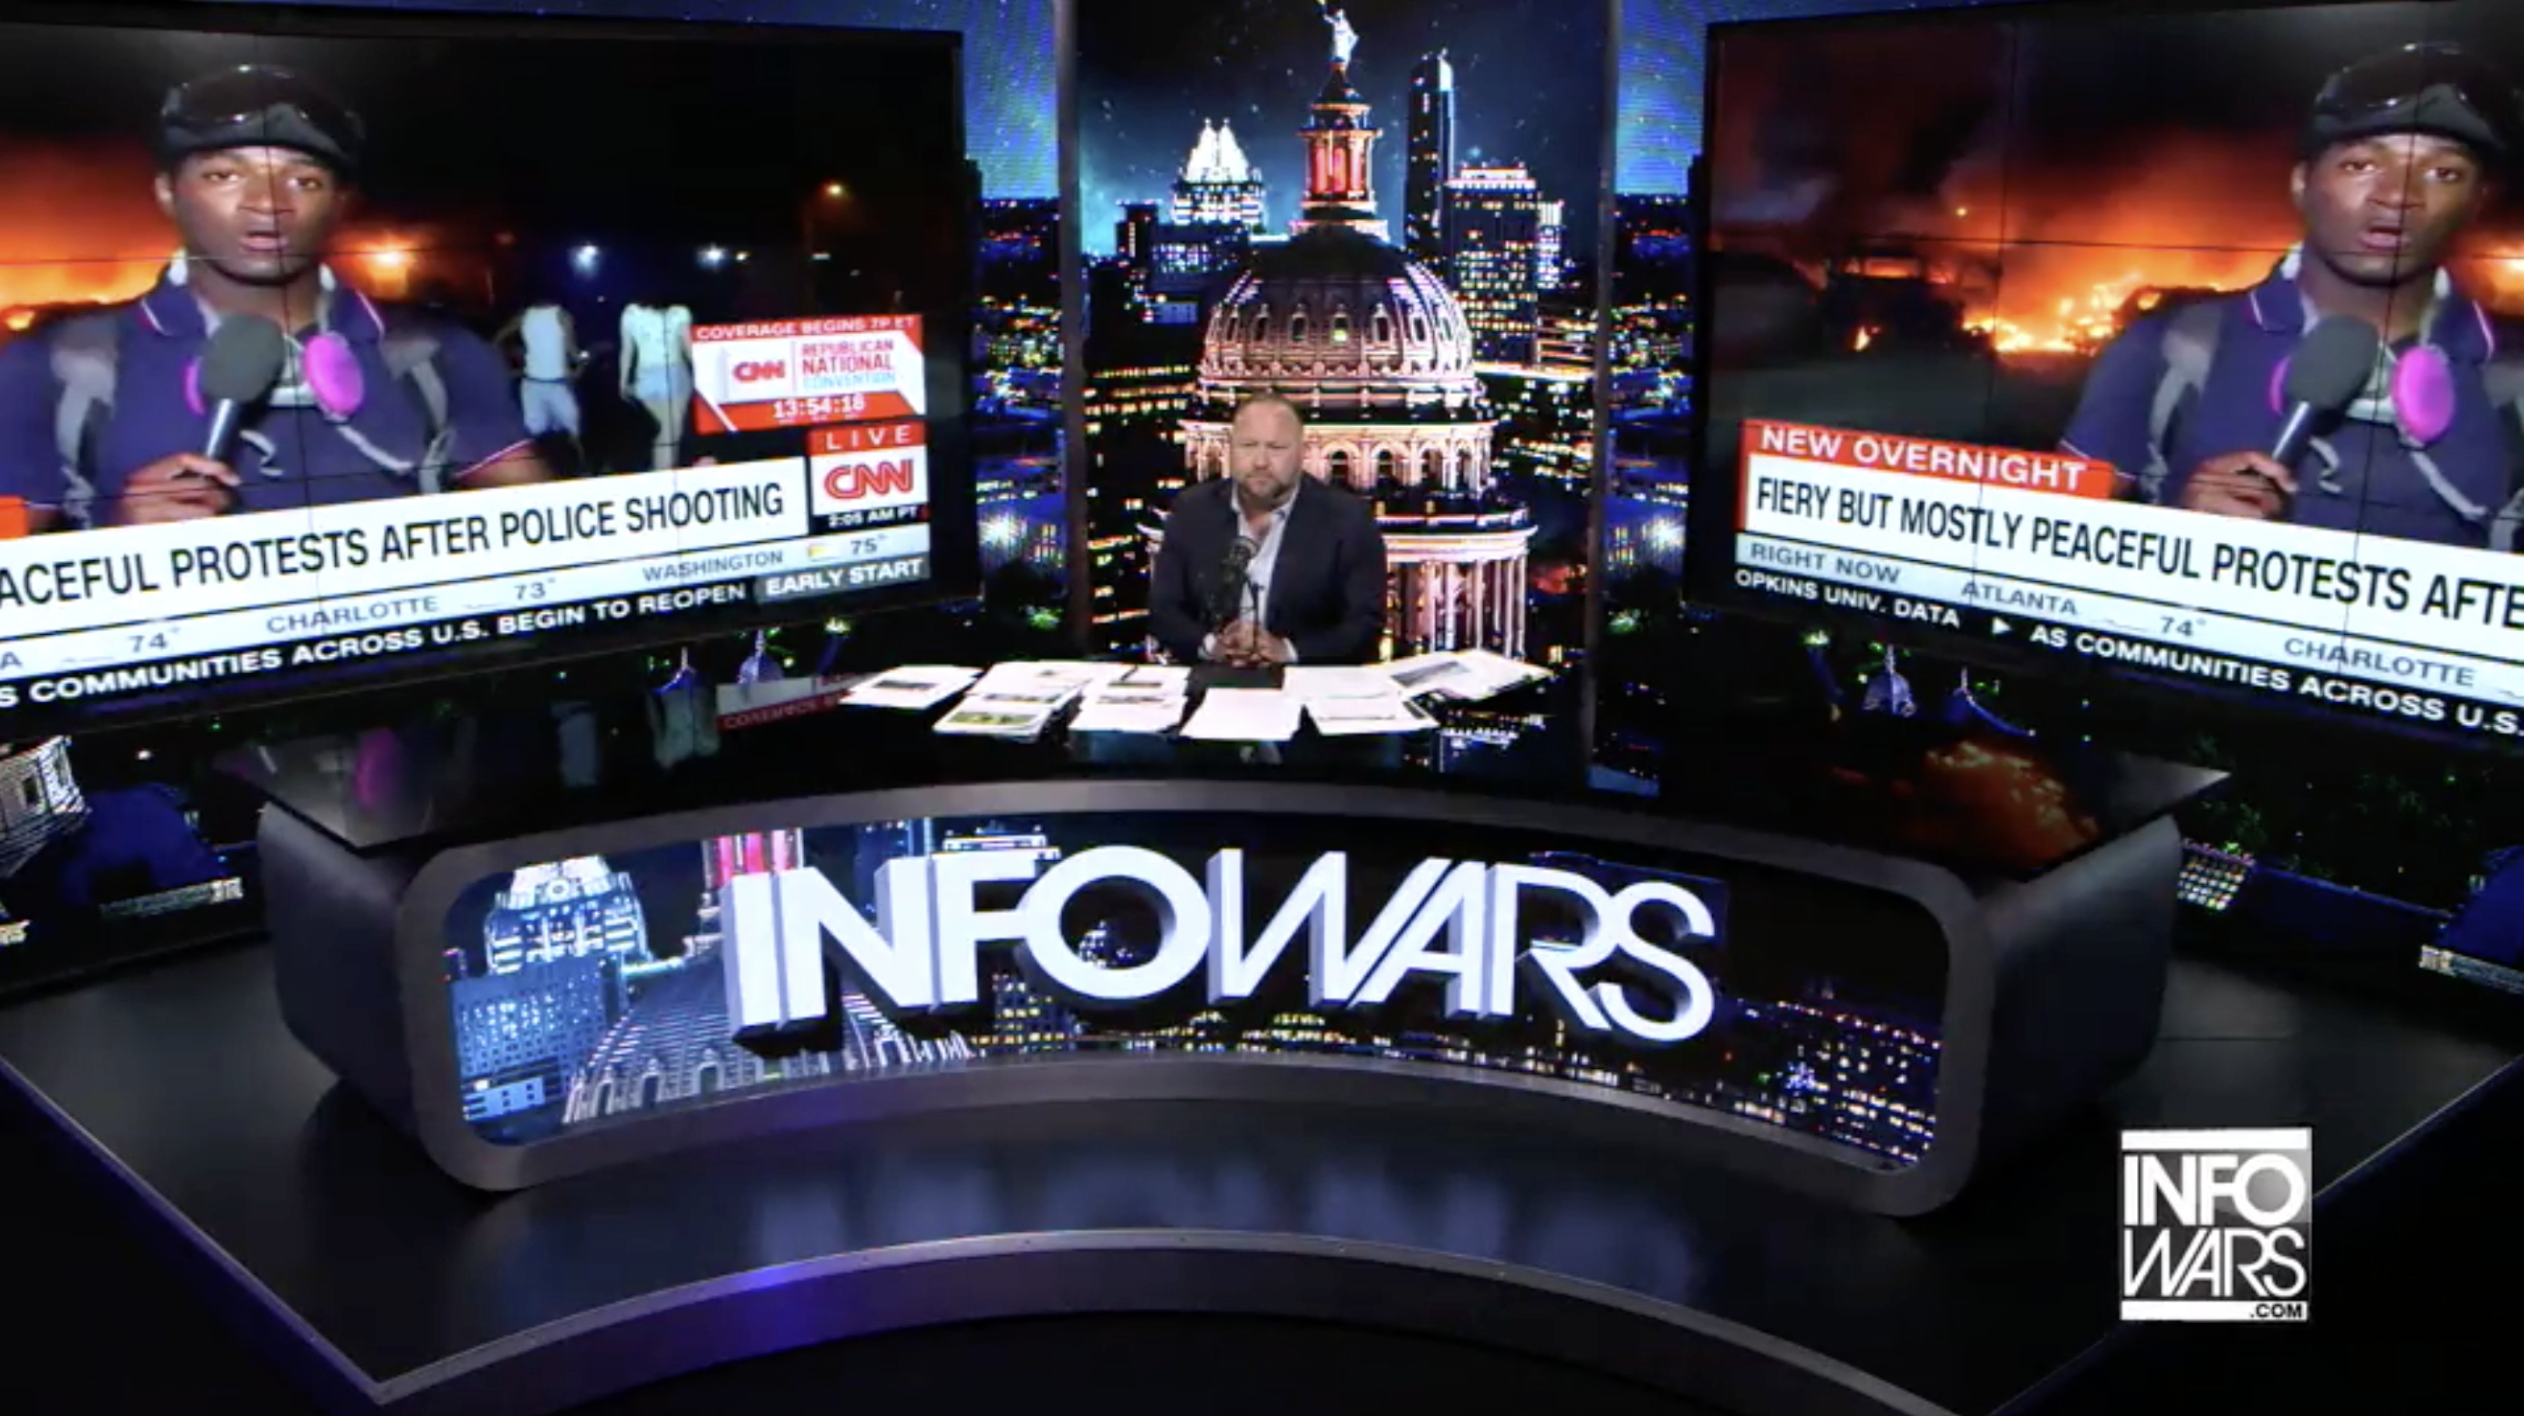 Alex Jones Infowars Studio Riots Cities on Fire CNN EXZM August 27th 2020